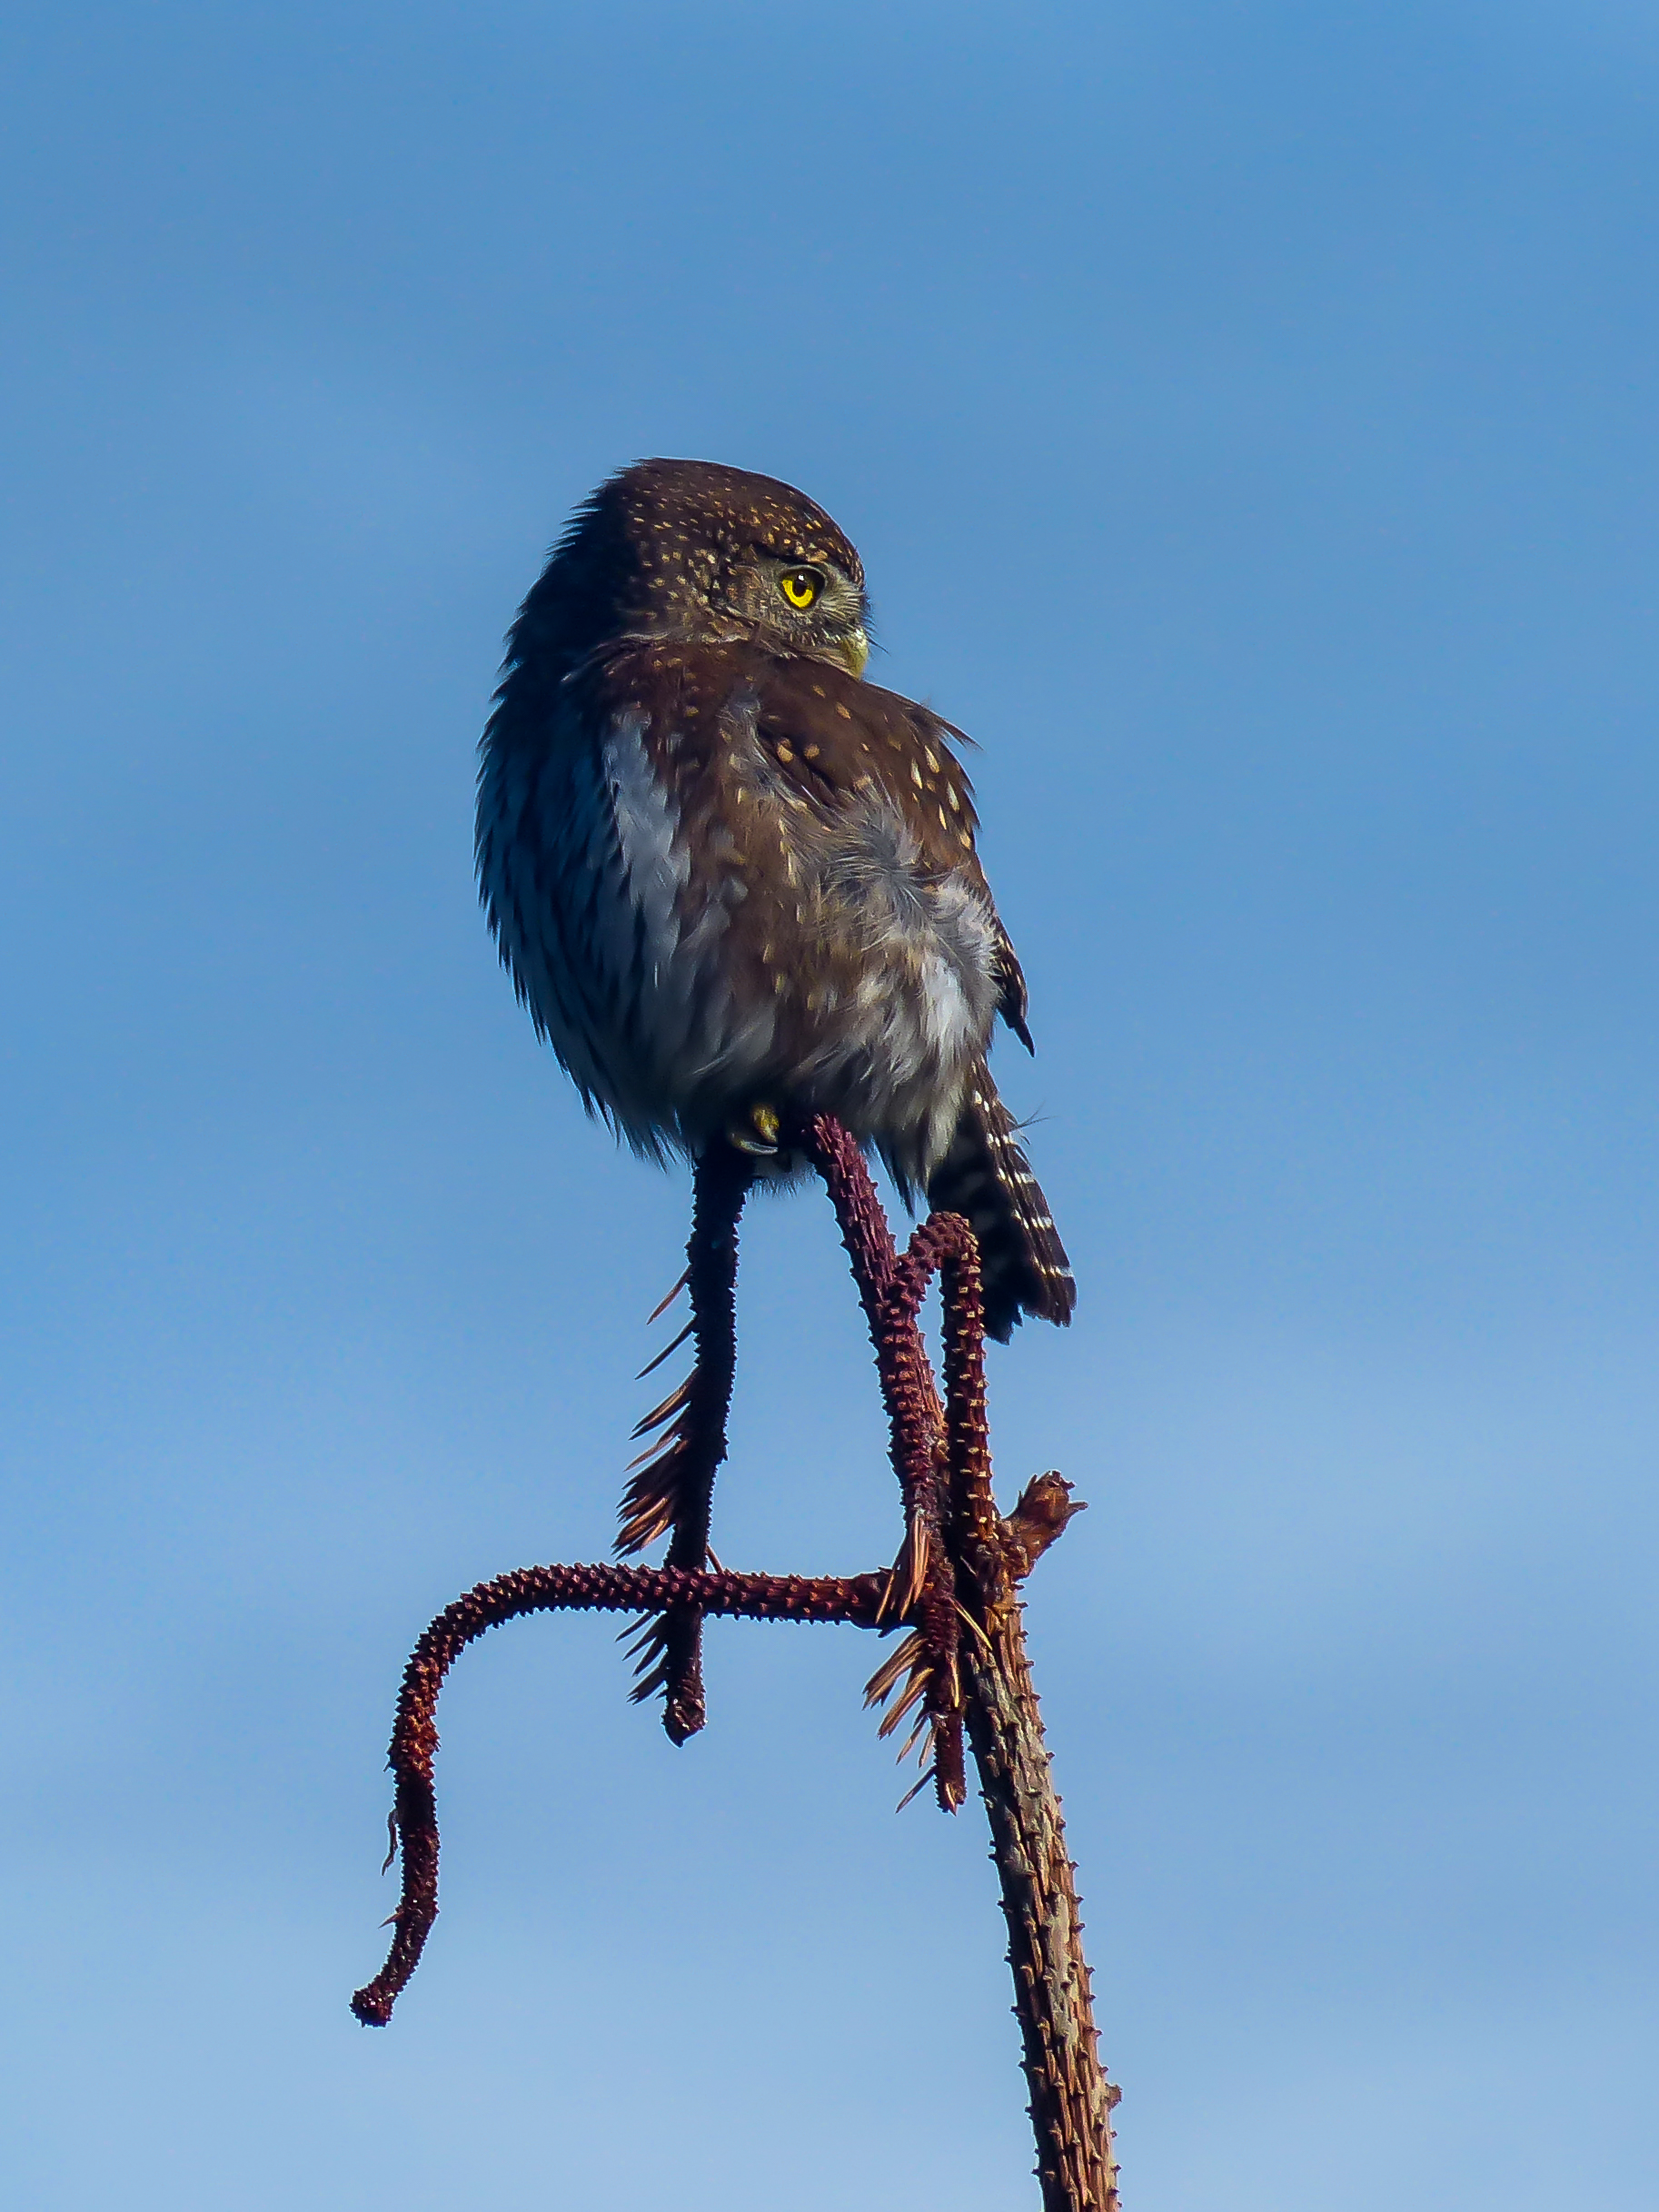 Another shot of the Northern pygmy owl spotted at Ellsworth. Photo by David Ryan / TNC